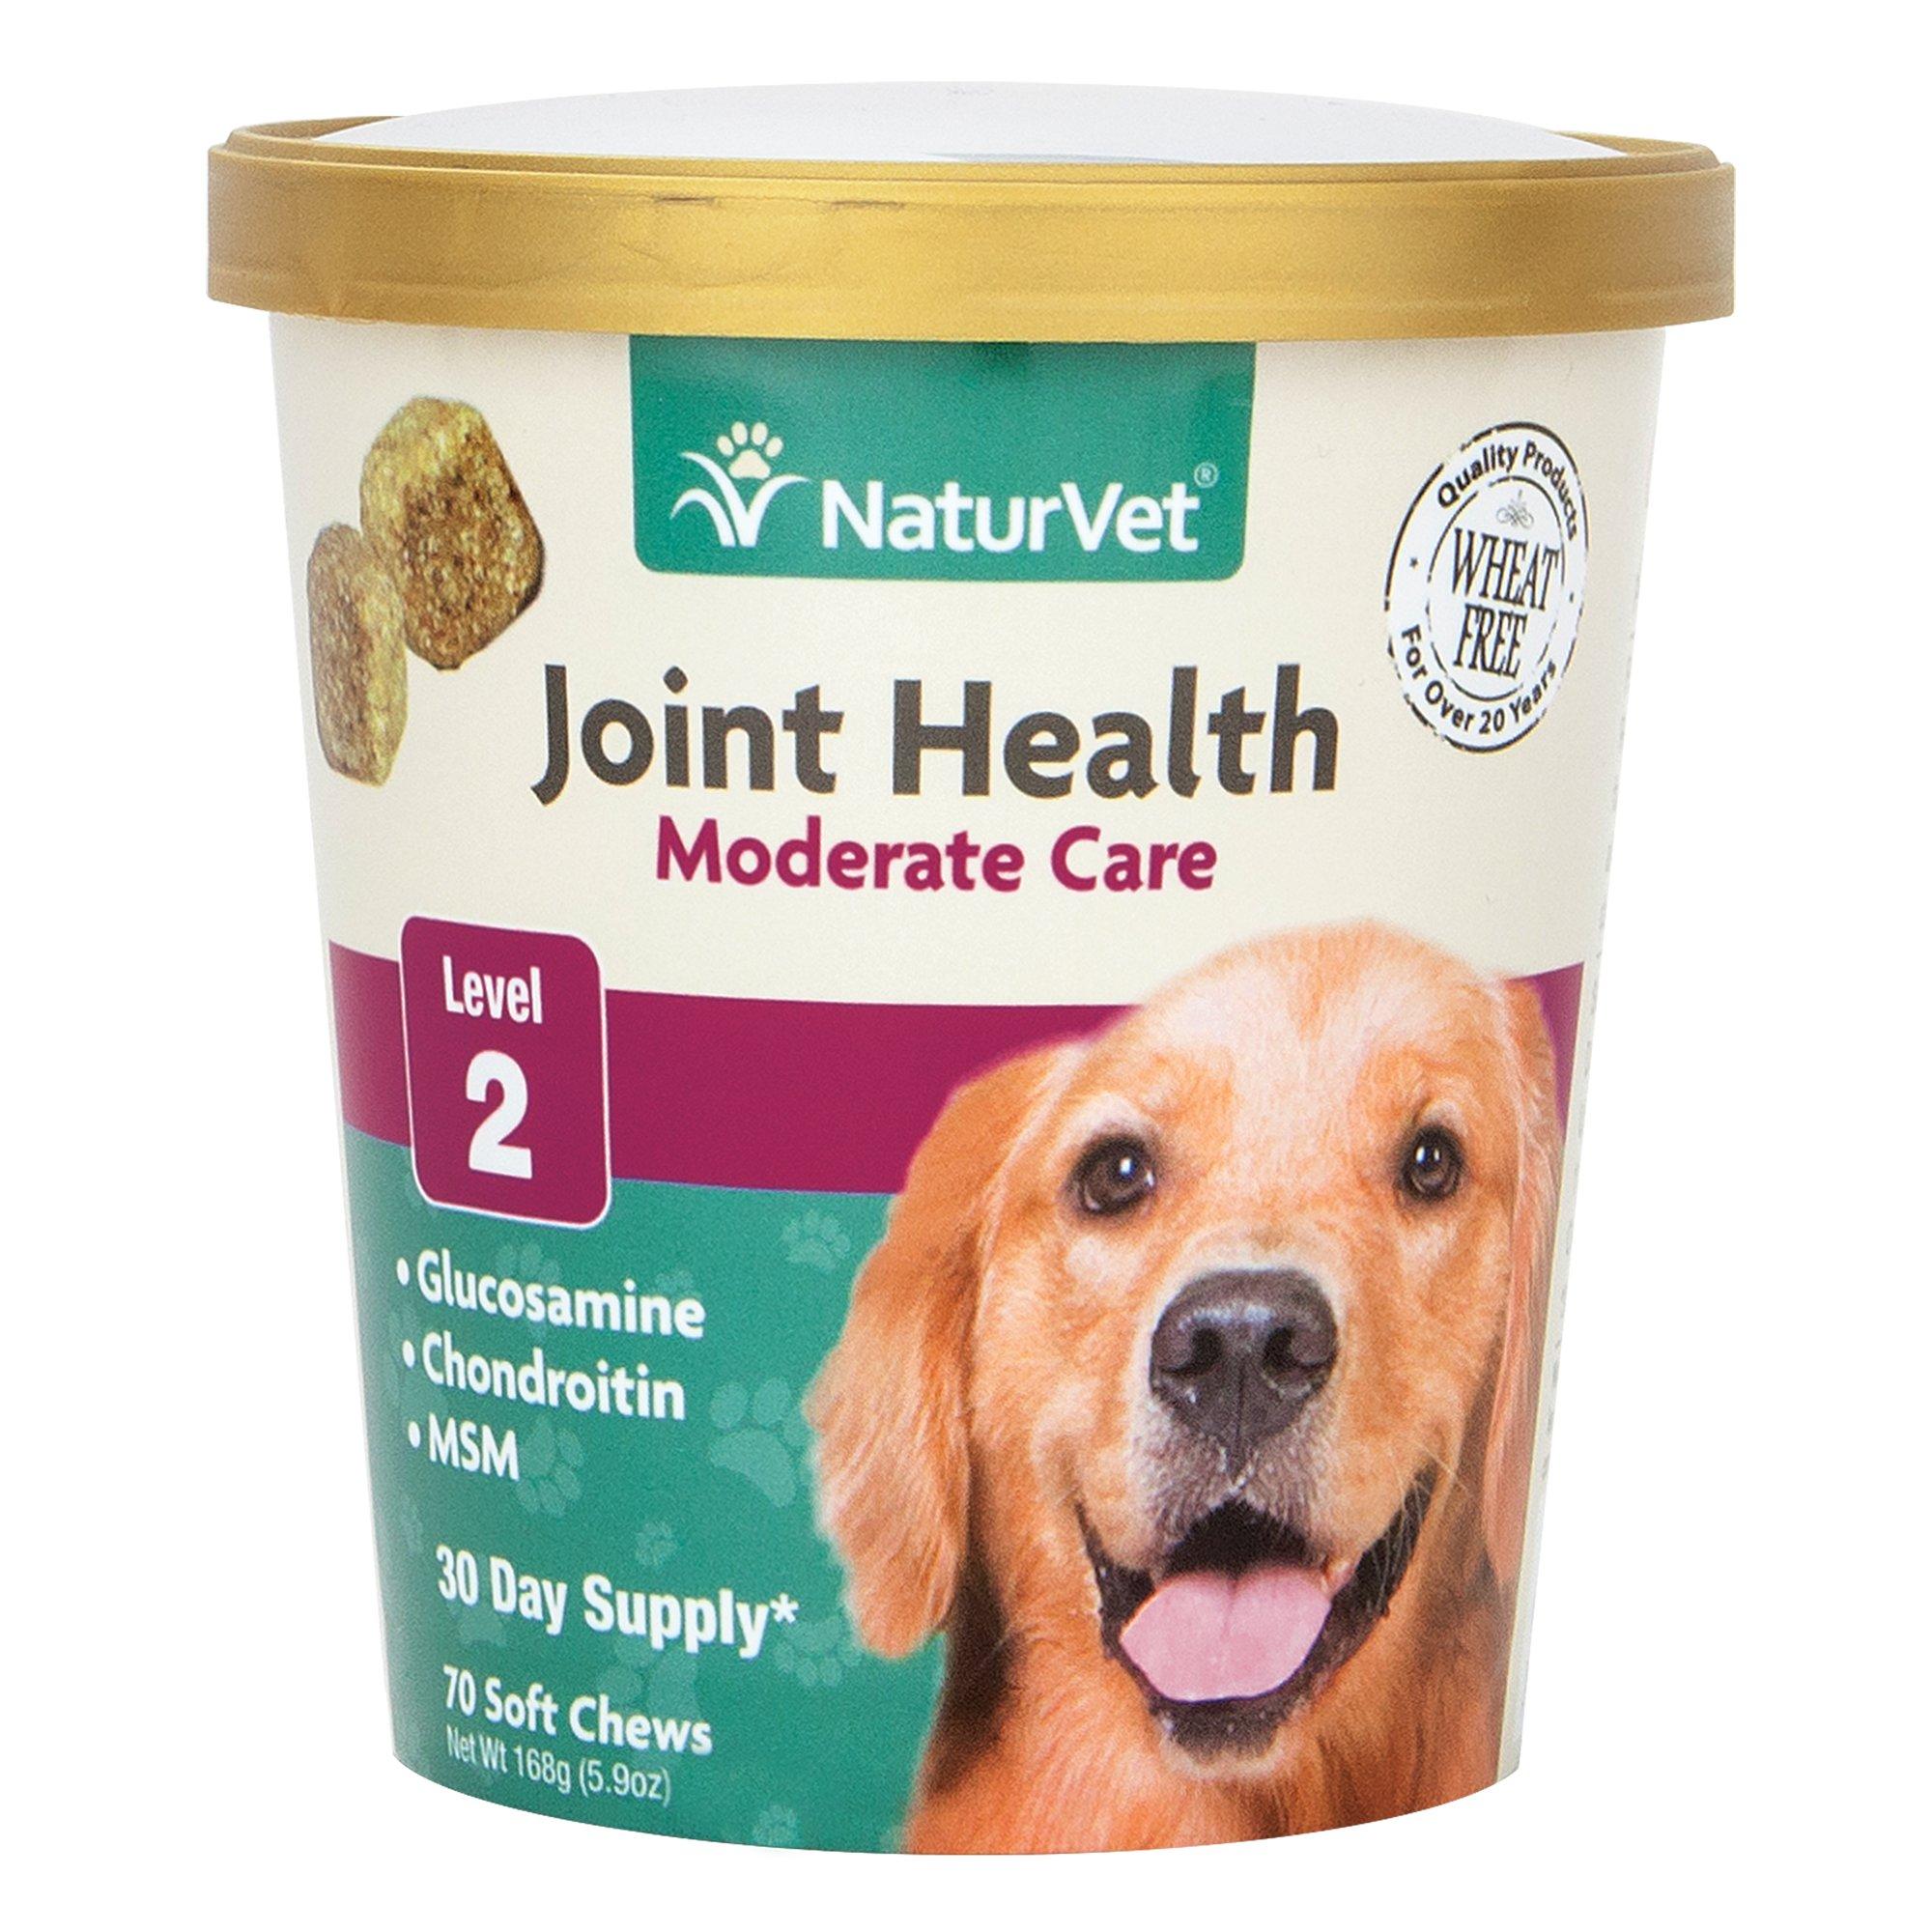 NaturVet Joint Health Moderate Care Dog Soft Chews